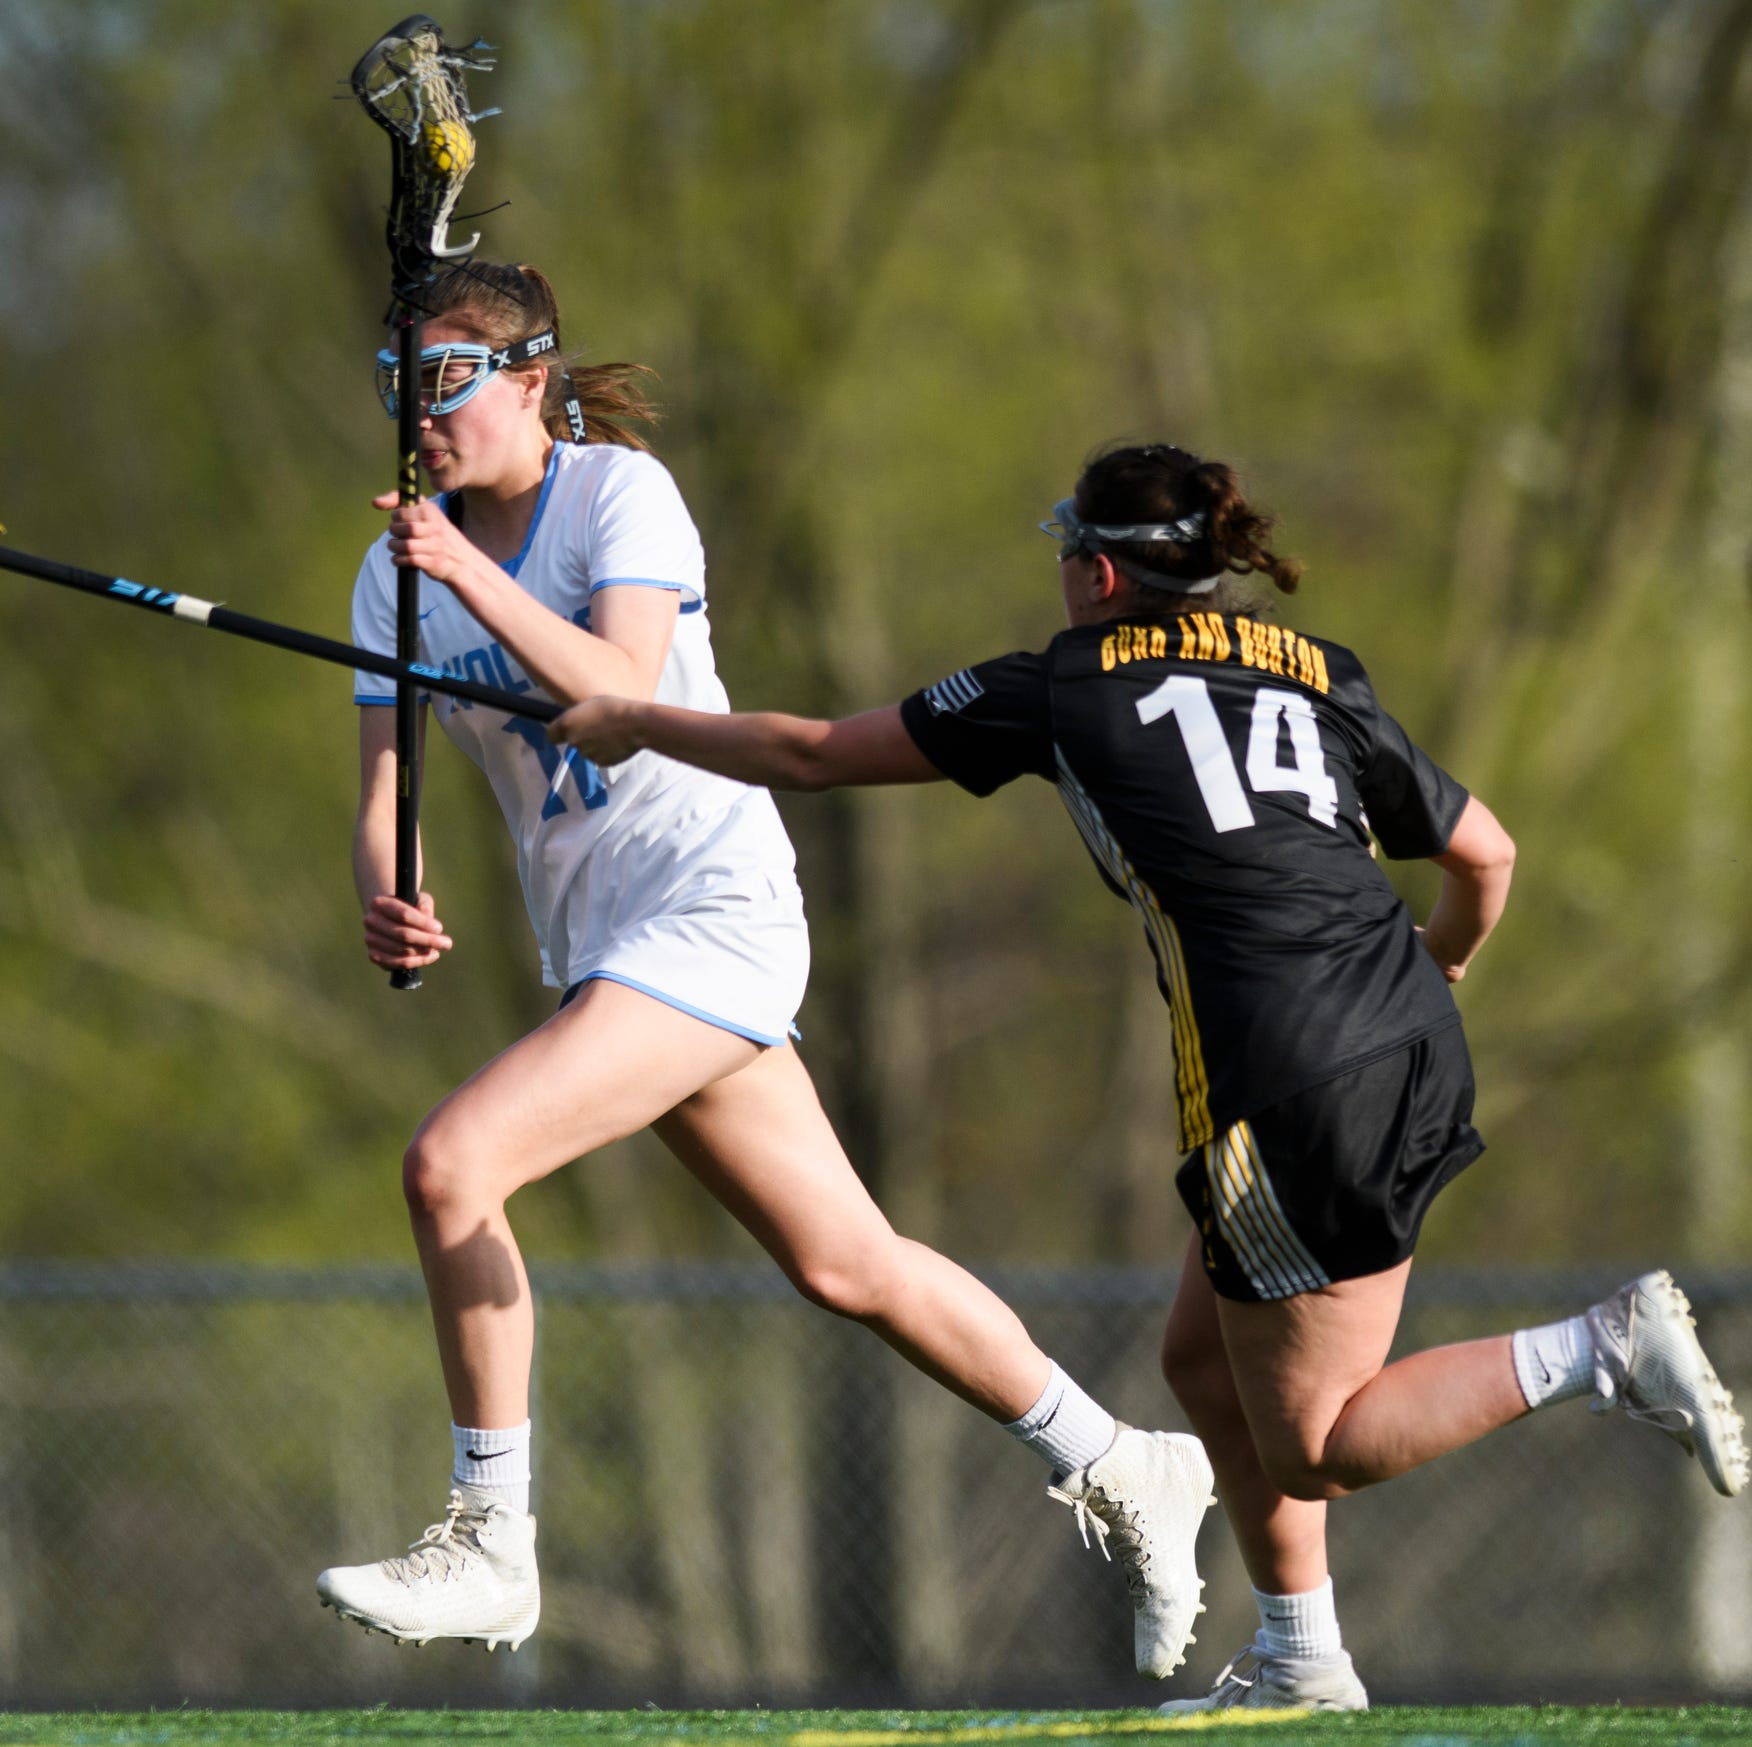 Monday's H.S. highlights: March, South Burlington sweep Rice in girls lacrosse